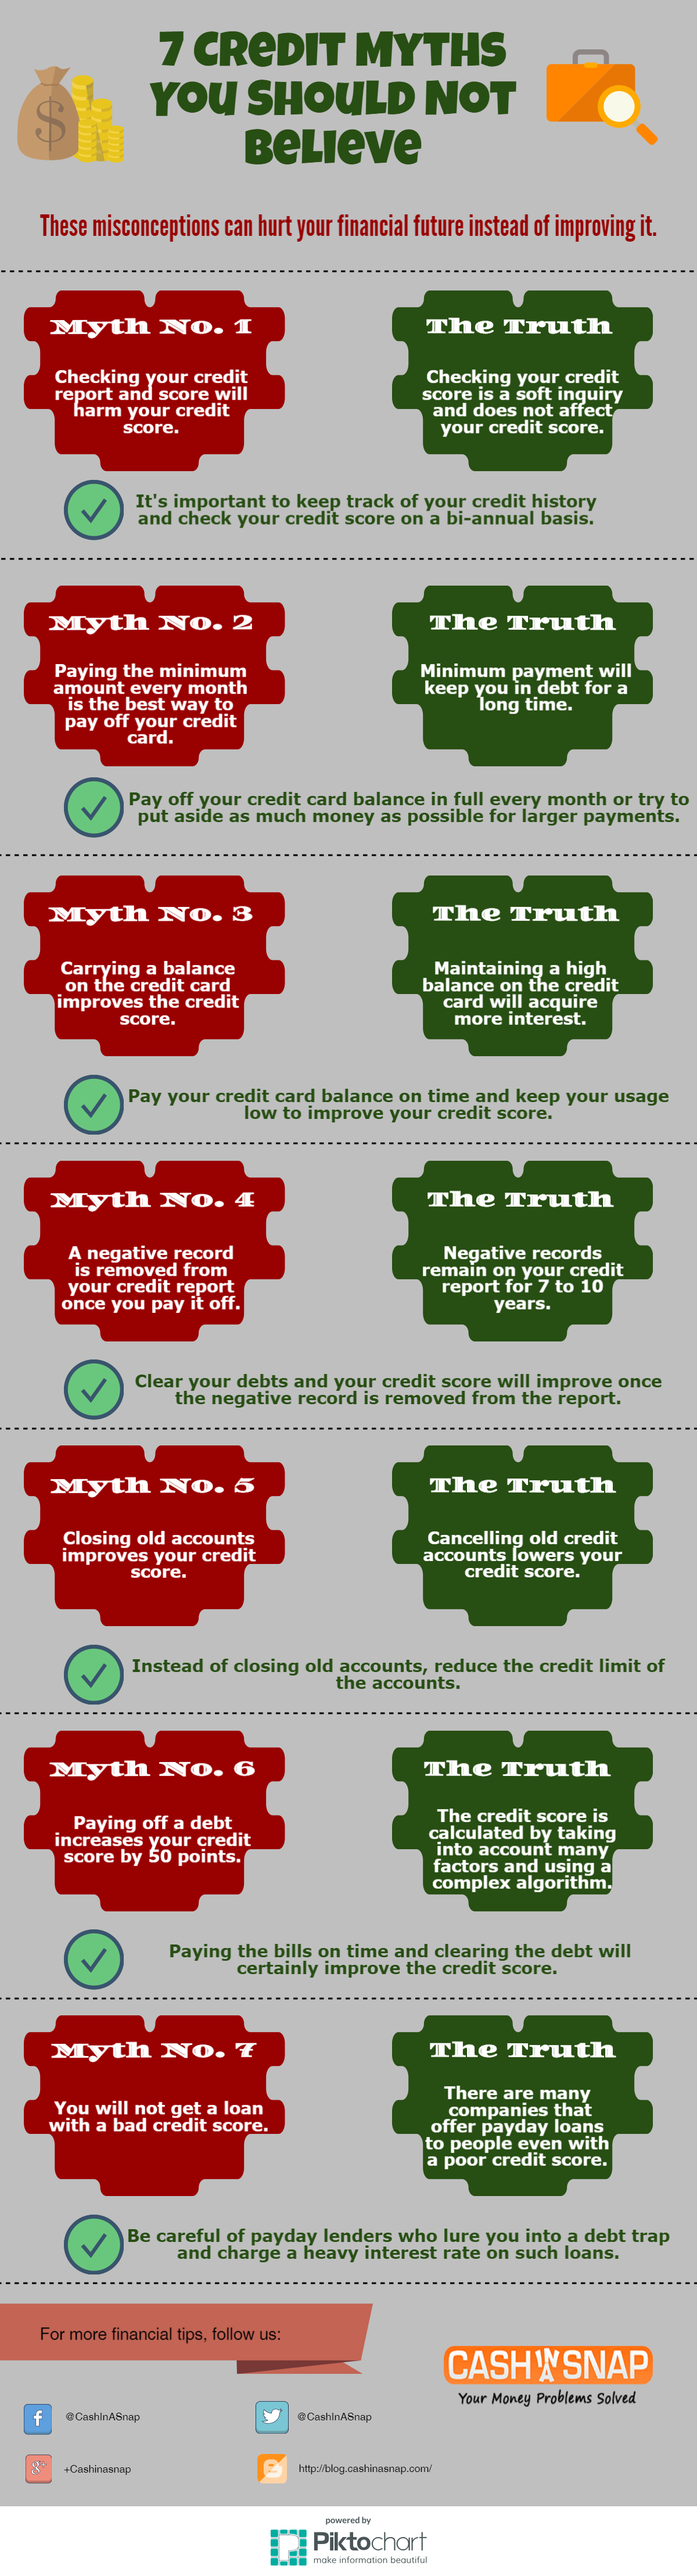 7 Credit Myths You Should Not Believe